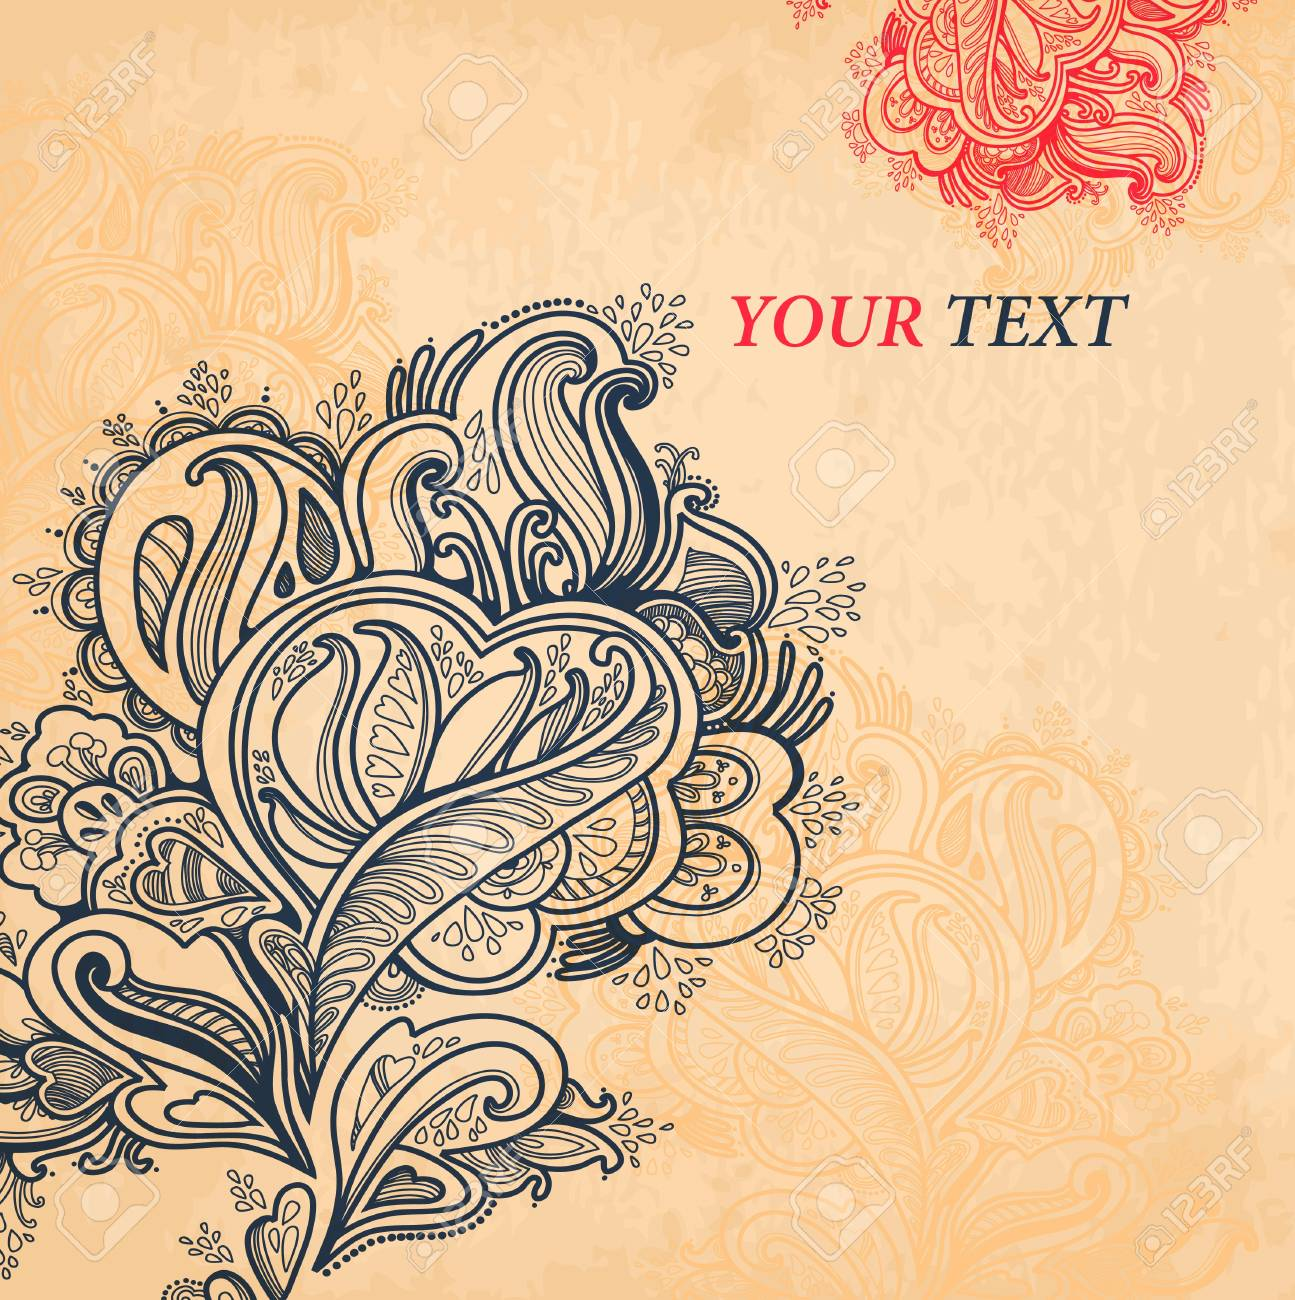 Abstract floral ornament with many details  Excellent background for your greeting card Stock Vector - 18487411